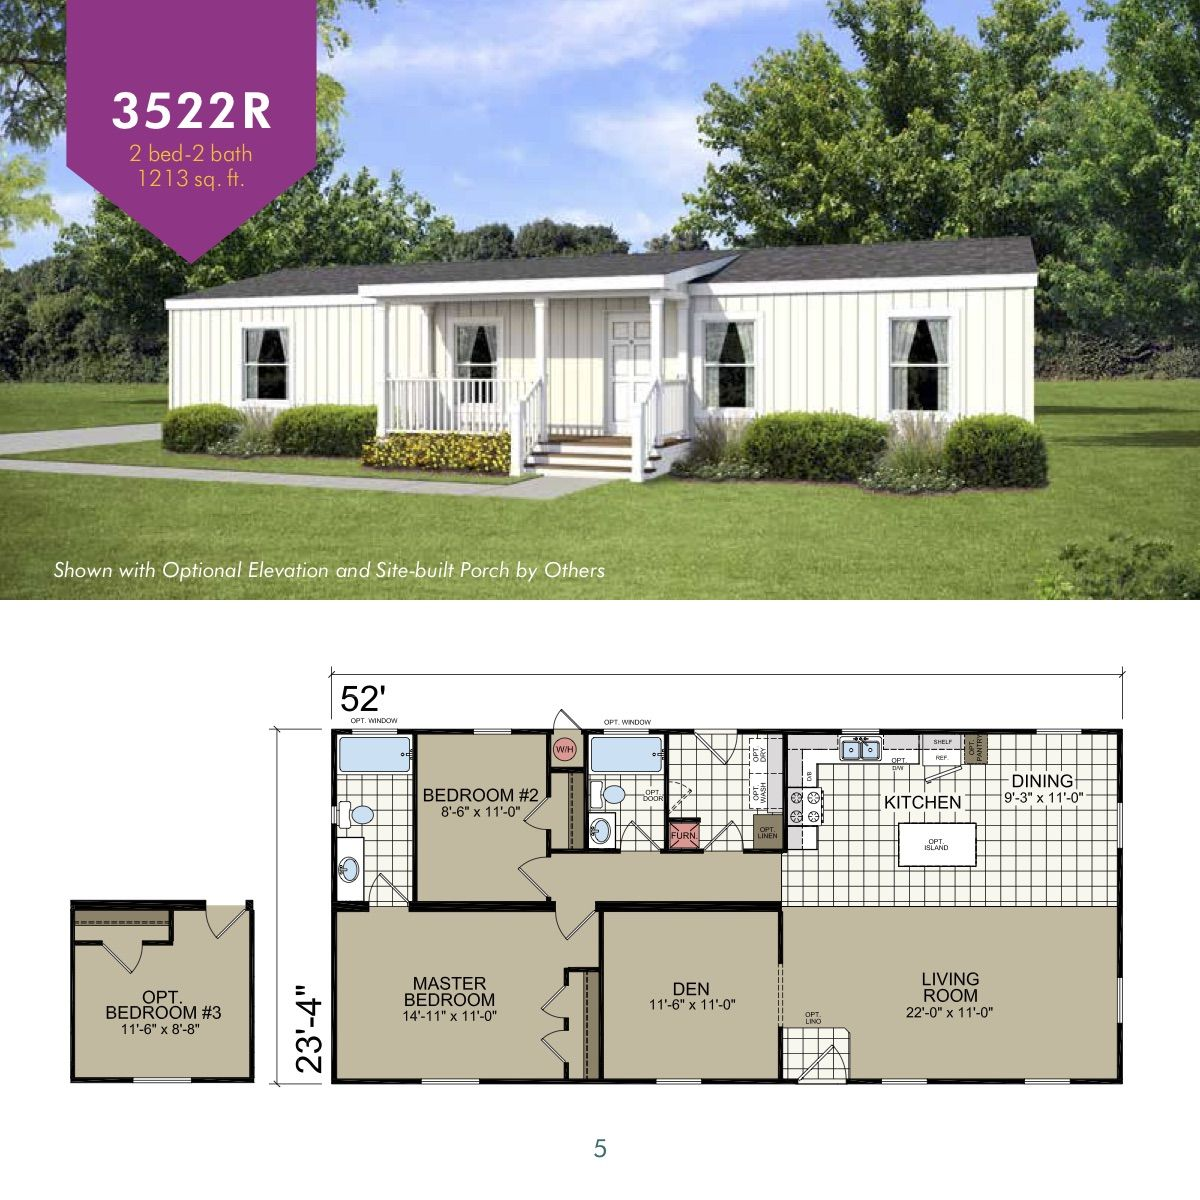 Le3522r Small House Design Home Design Floor Plans Mobile Home Floor Plans